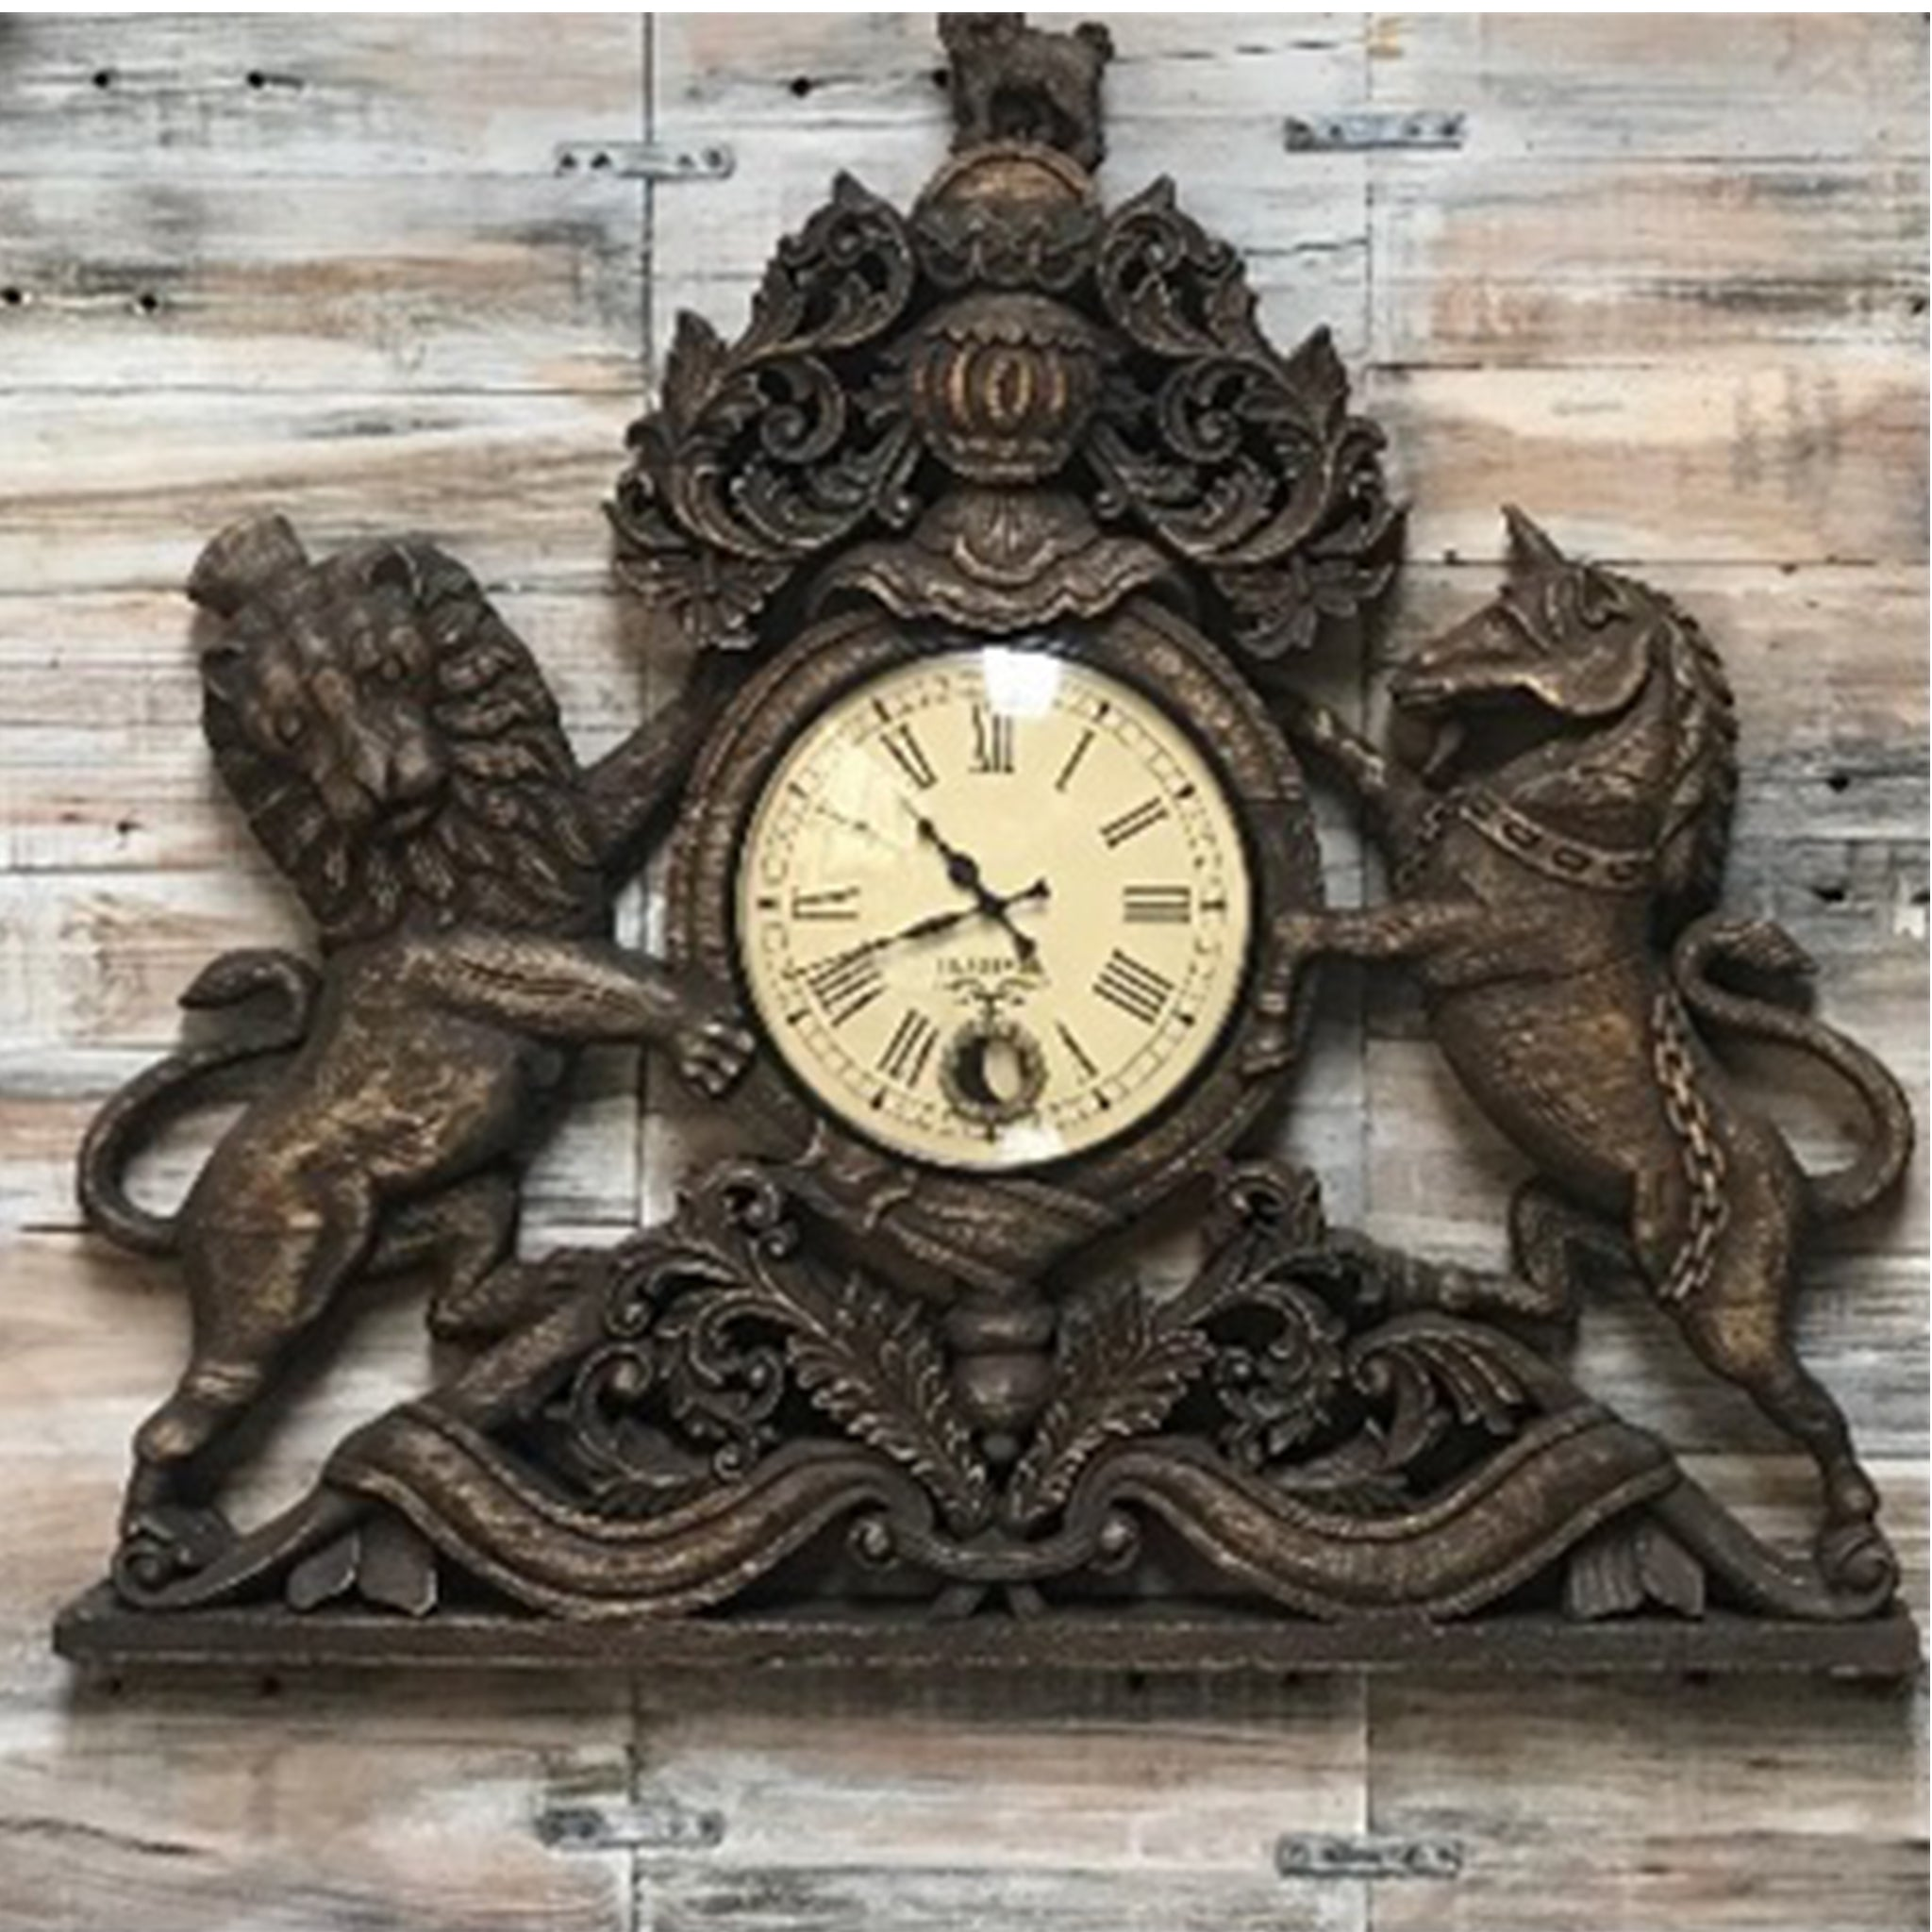 Vintage Hand Carved Wooden 'United Kingdom Royal Coat of Arms' Pendulum Wall Clock